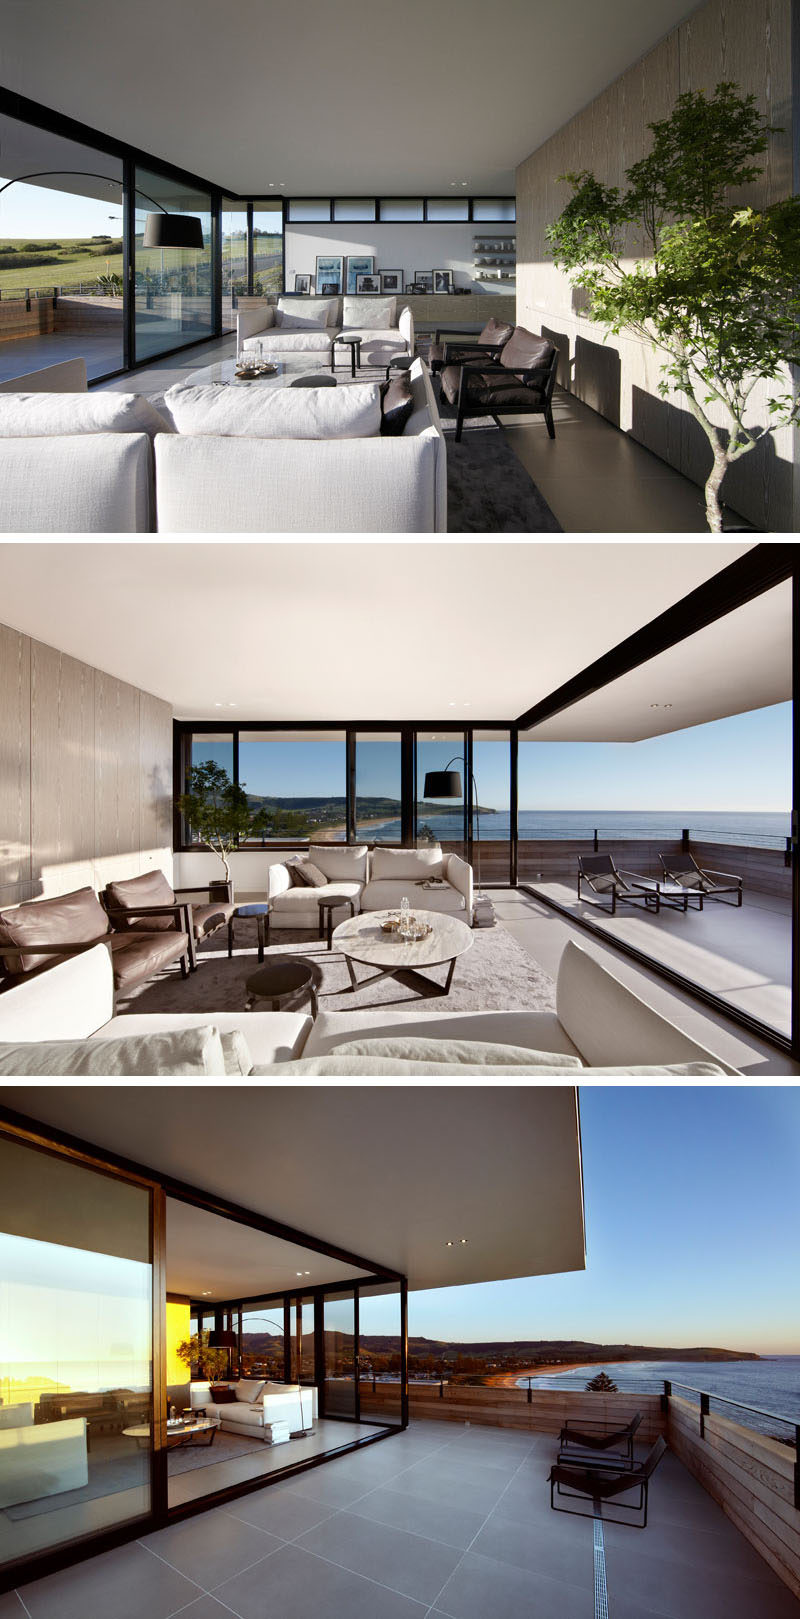 This modern living room has large sliding glass walls to open it up to the balcony. #LivingRoom #Balcony